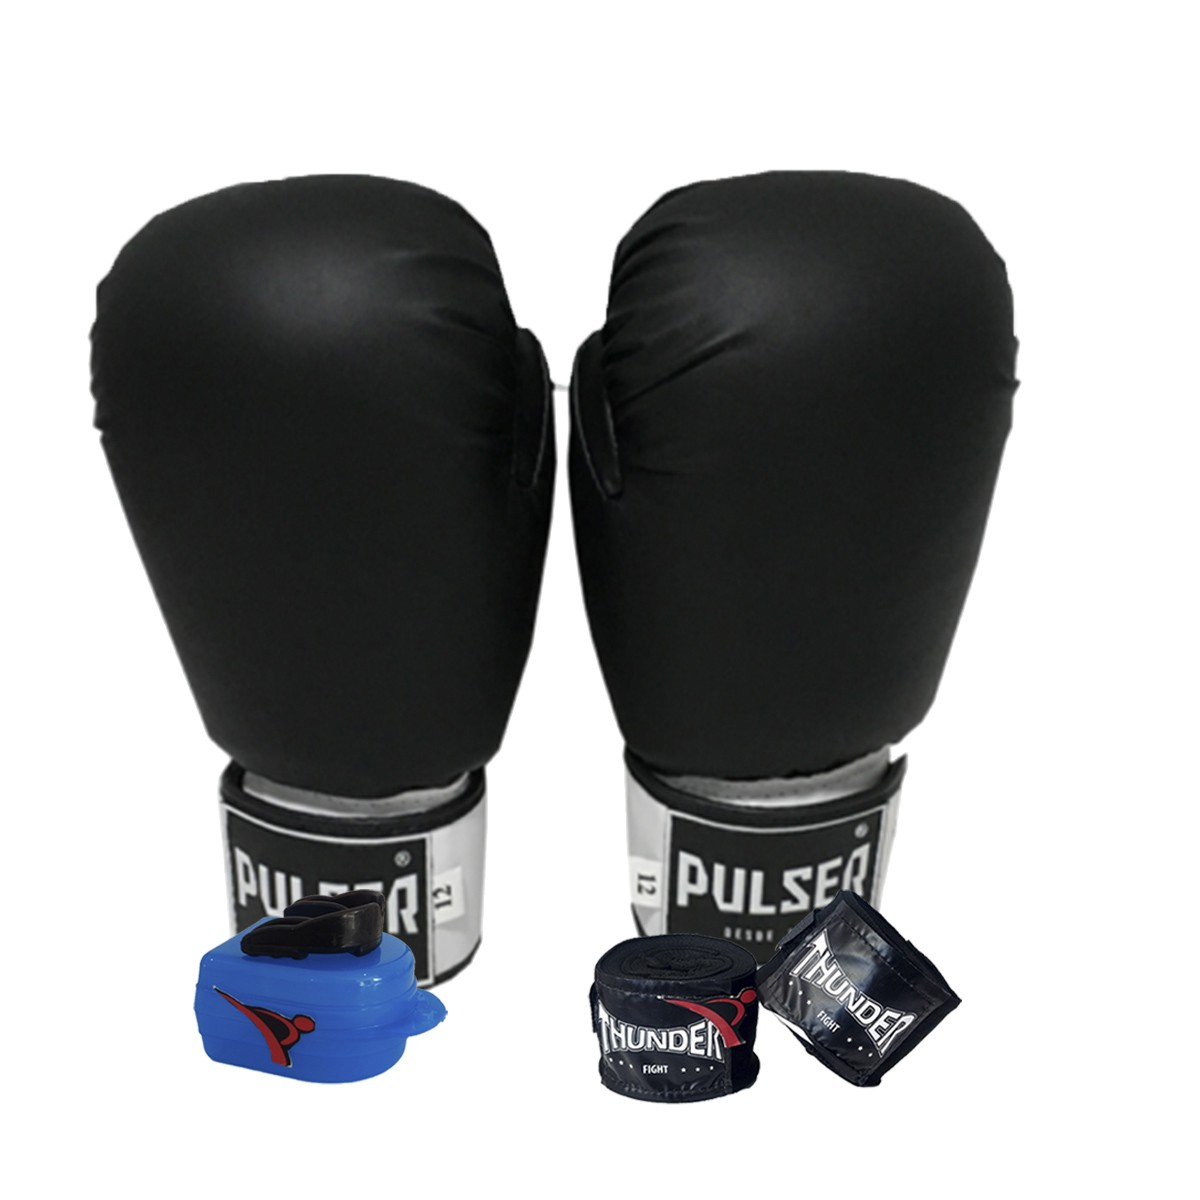 Kit de Boxe / Muay Thai 12oz - Preto - Pulser  - PRALUTA SHOP